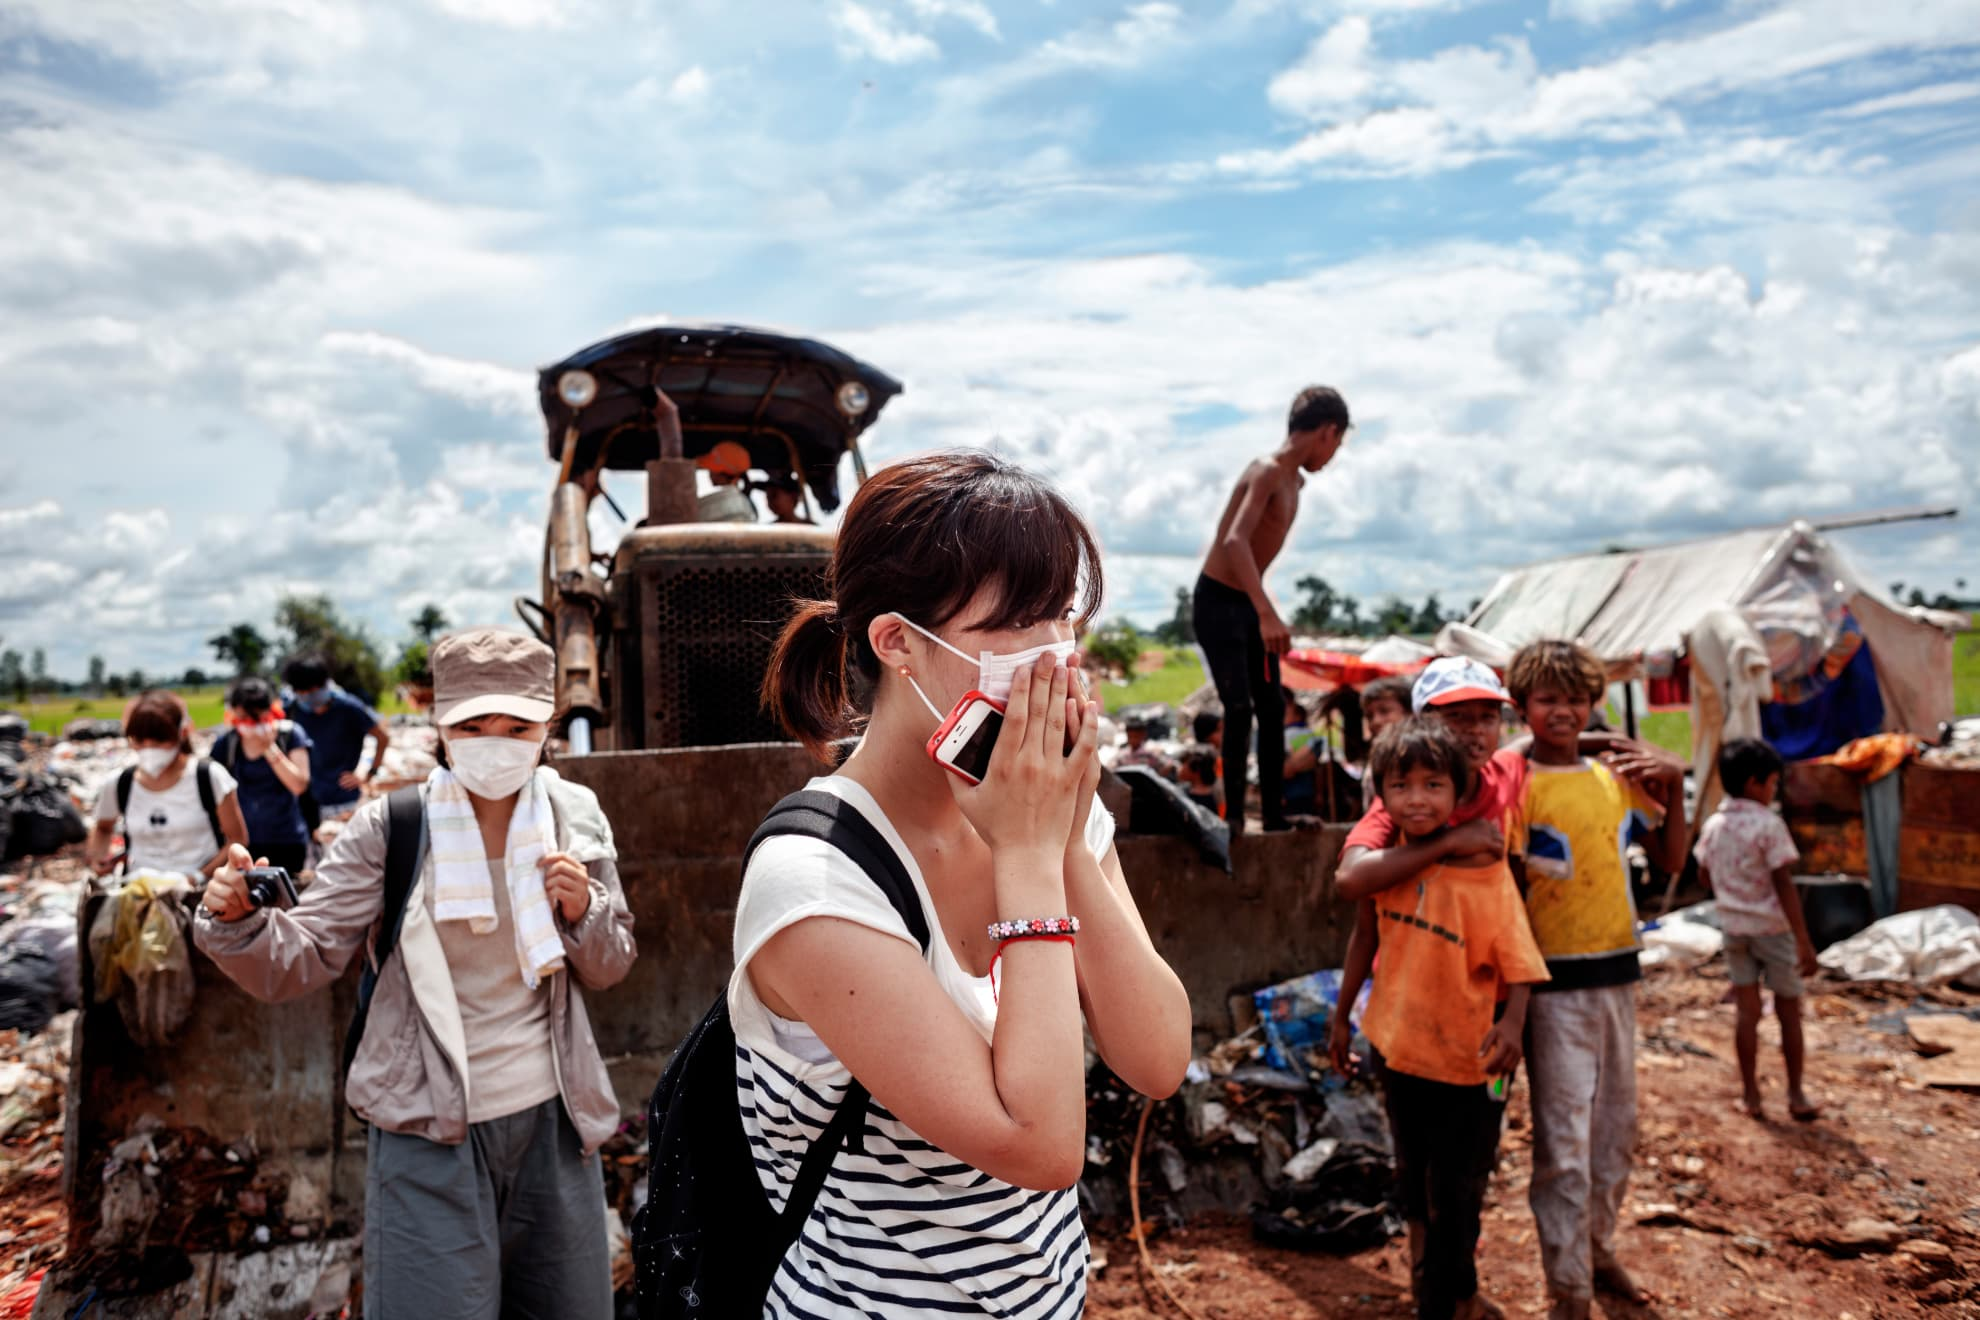 A Japanese tourist covers her mouth and nose from the foul smell given off by the gases at the Siem Reap rubbish dump (Cambodia). The visit there is part of a tourist route.